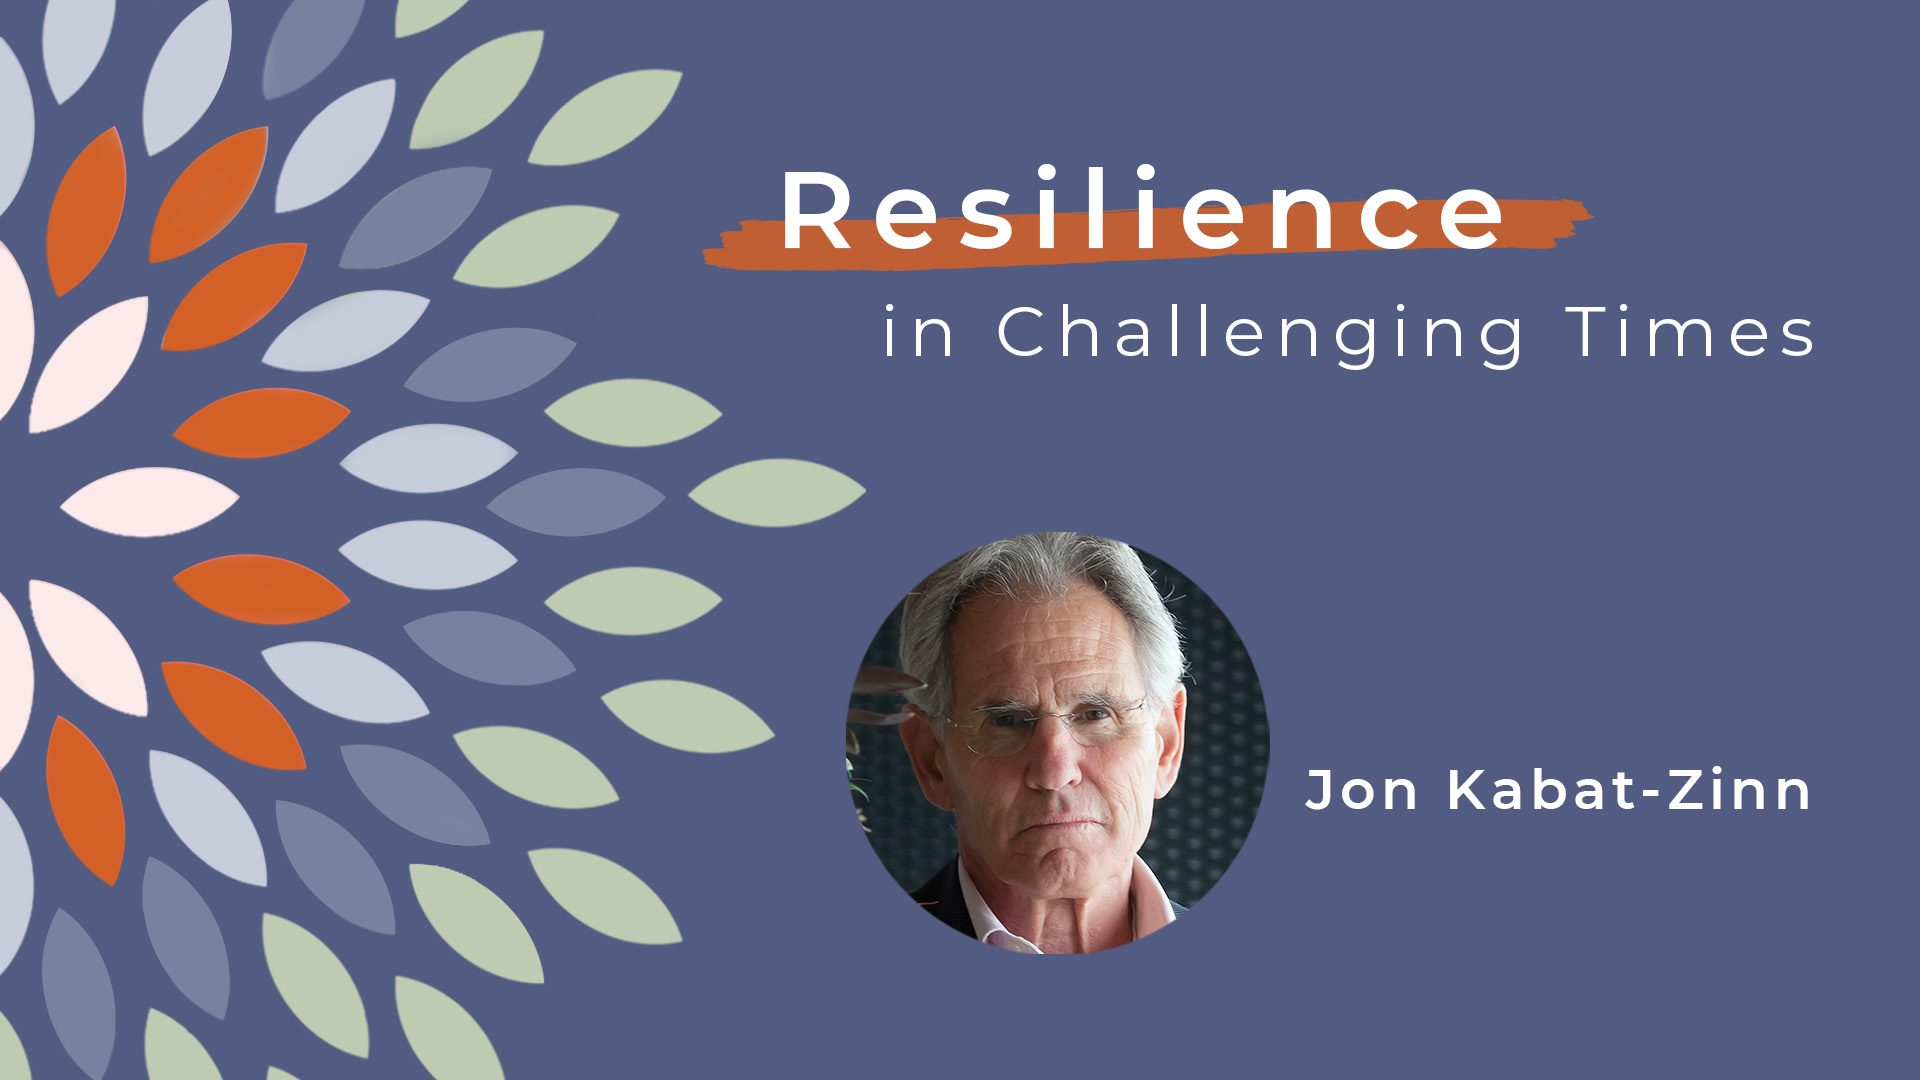 Resiliece-video-jon-kabat-zinn-title-card